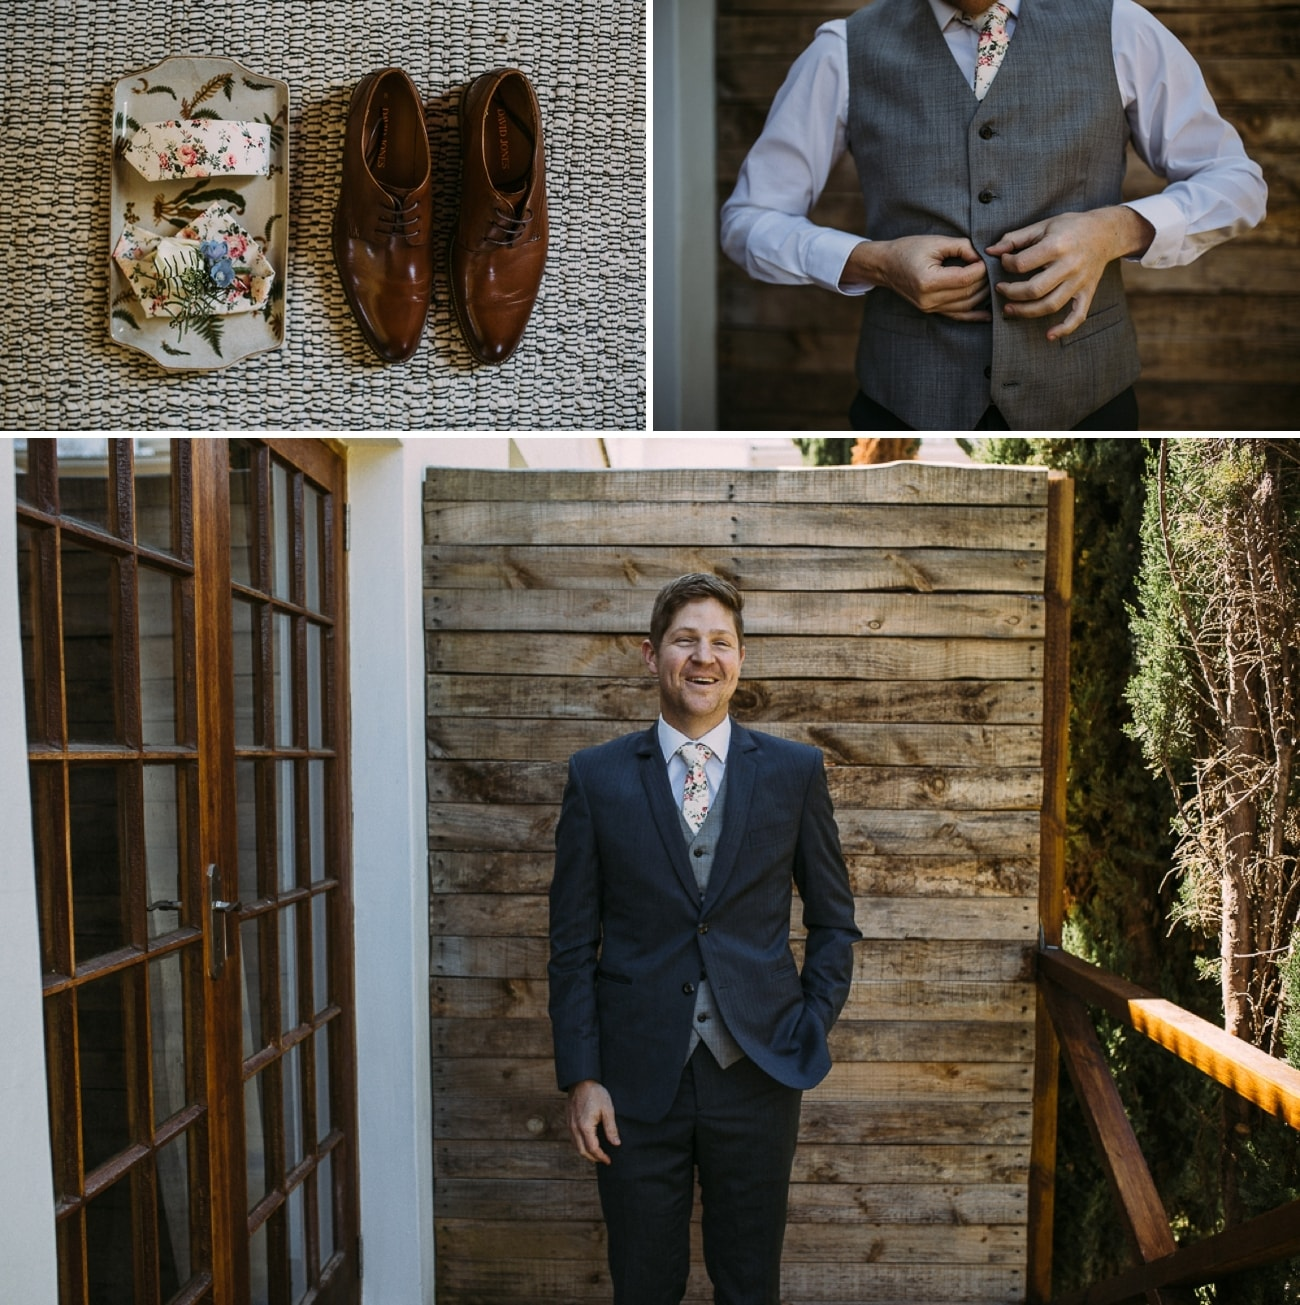 Groom in Floral Tie | Image: Hayley Takes Photos